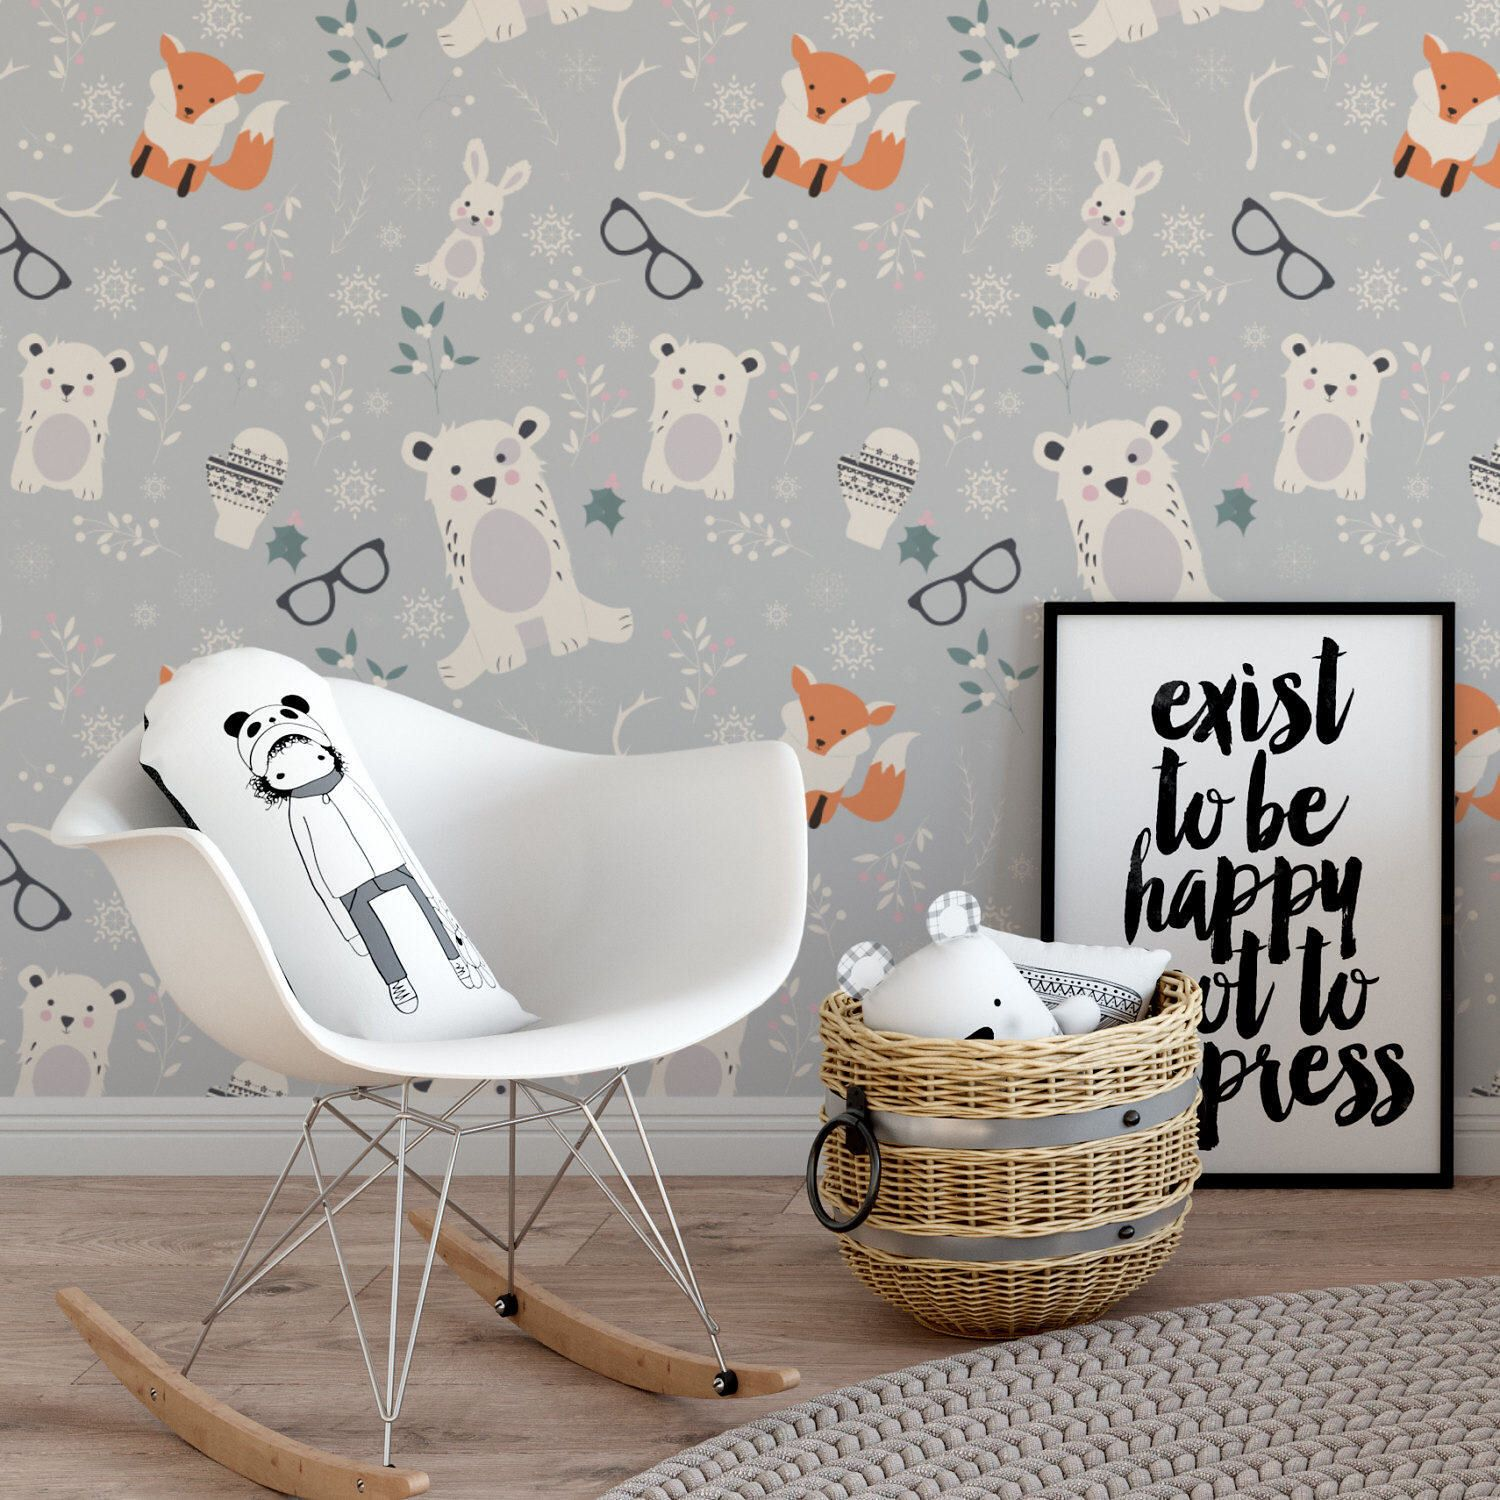 Bear And Fox Smart Wallpaper Elegant Art Removable Adhesive Wall